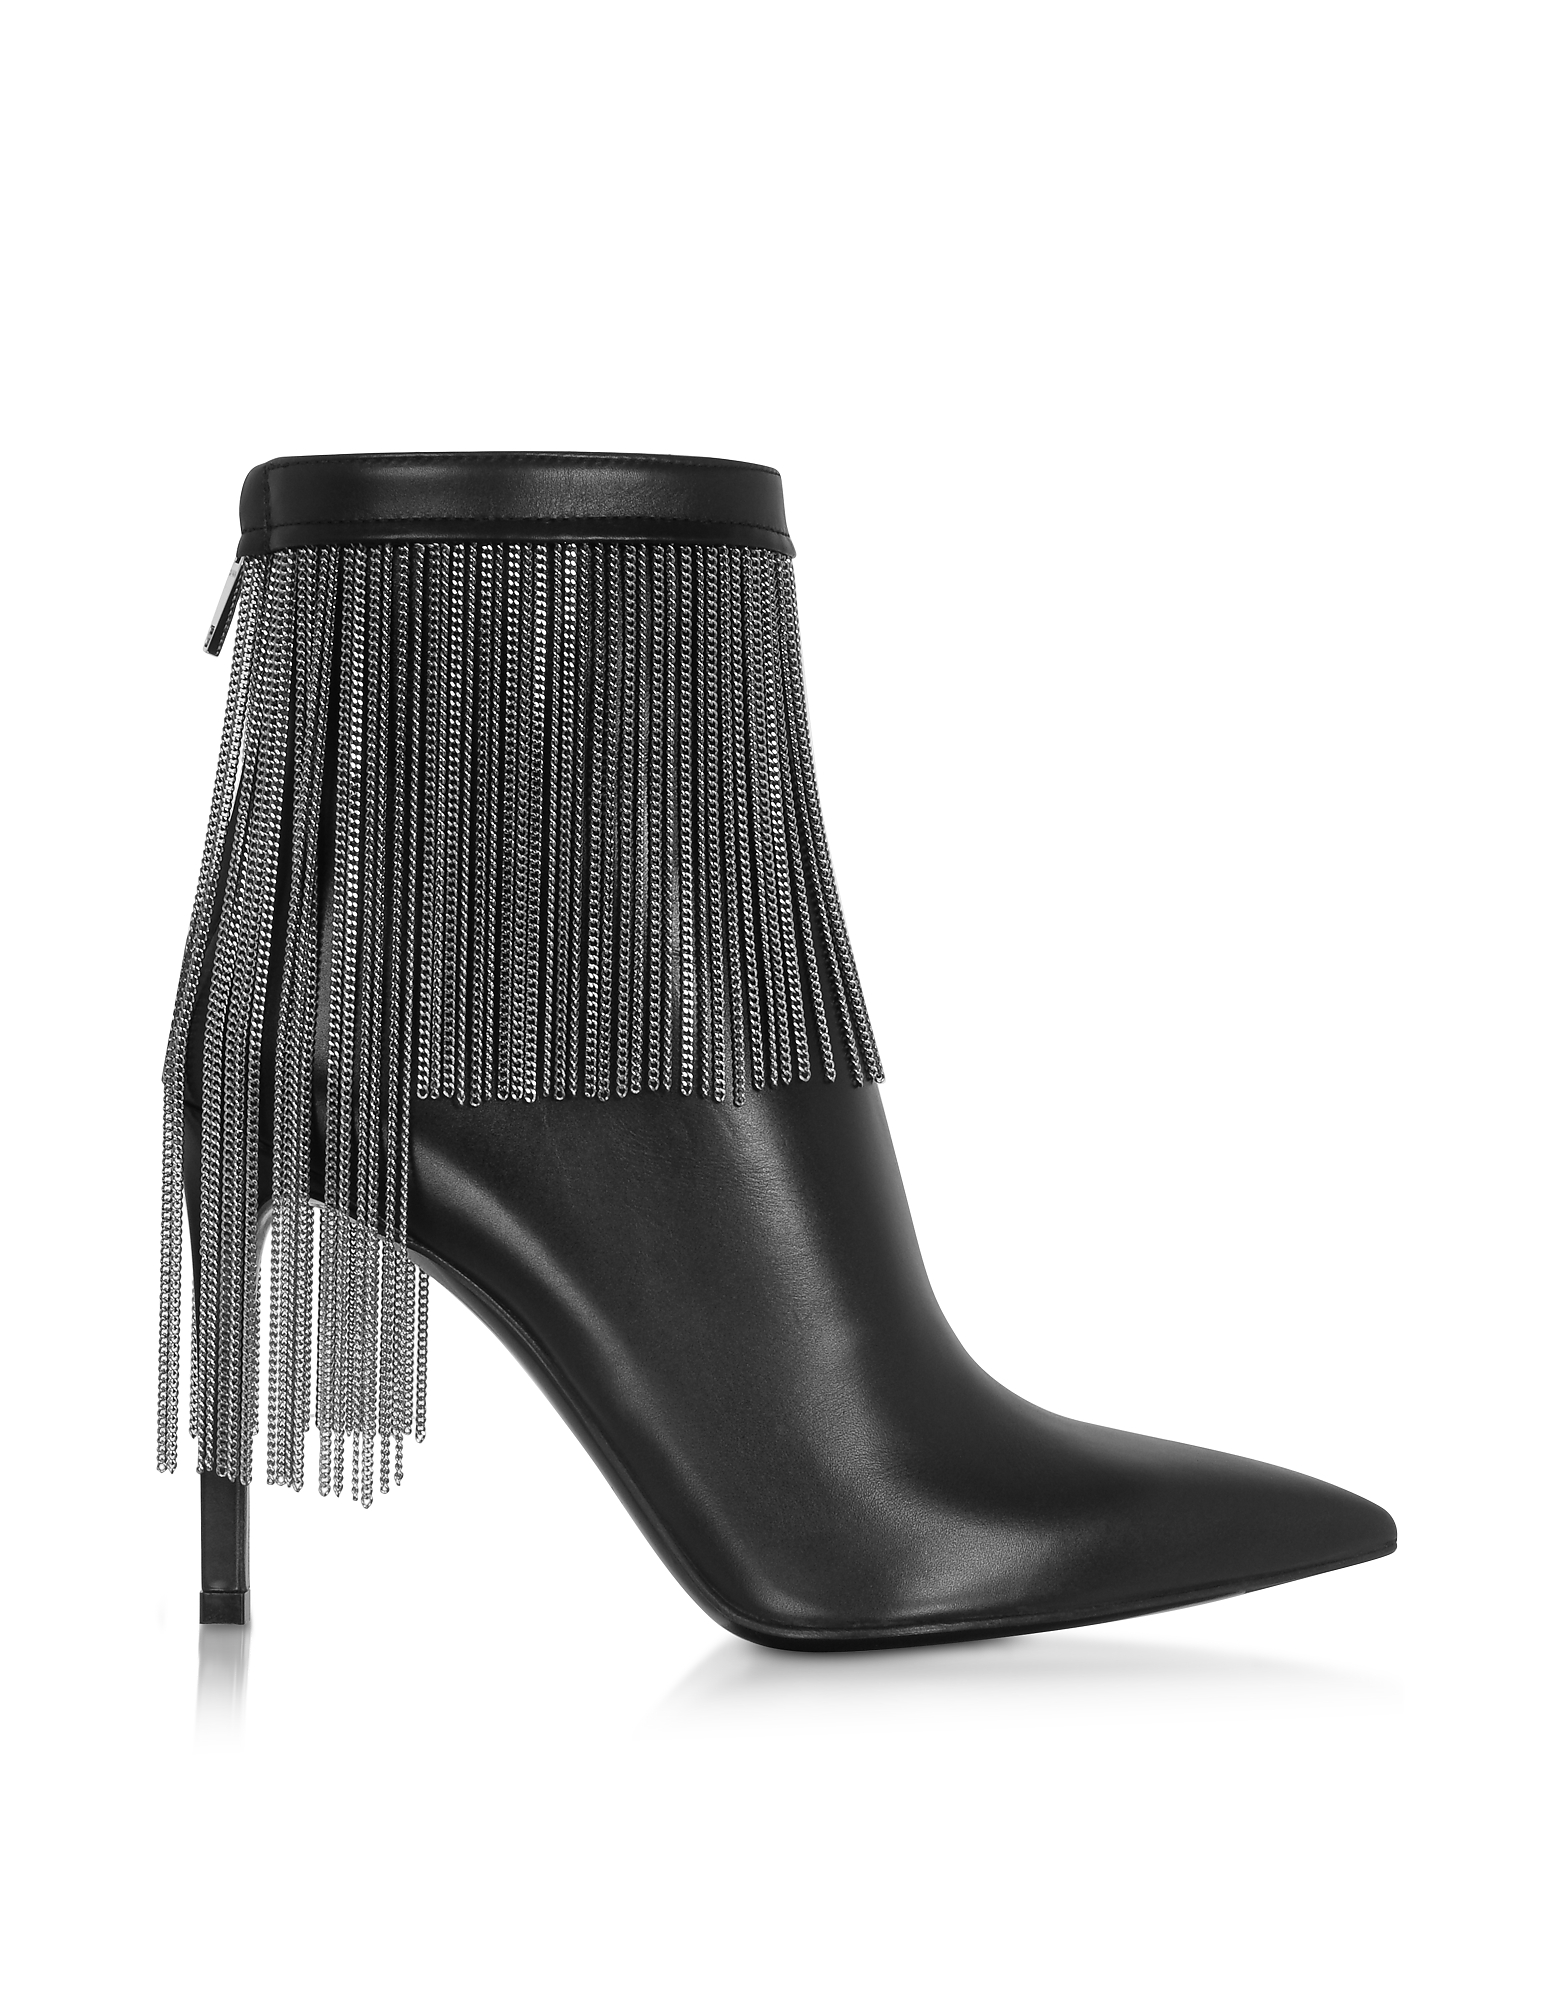 Balmain Designer Shoes, Black Leather & Chains Mercy Boots